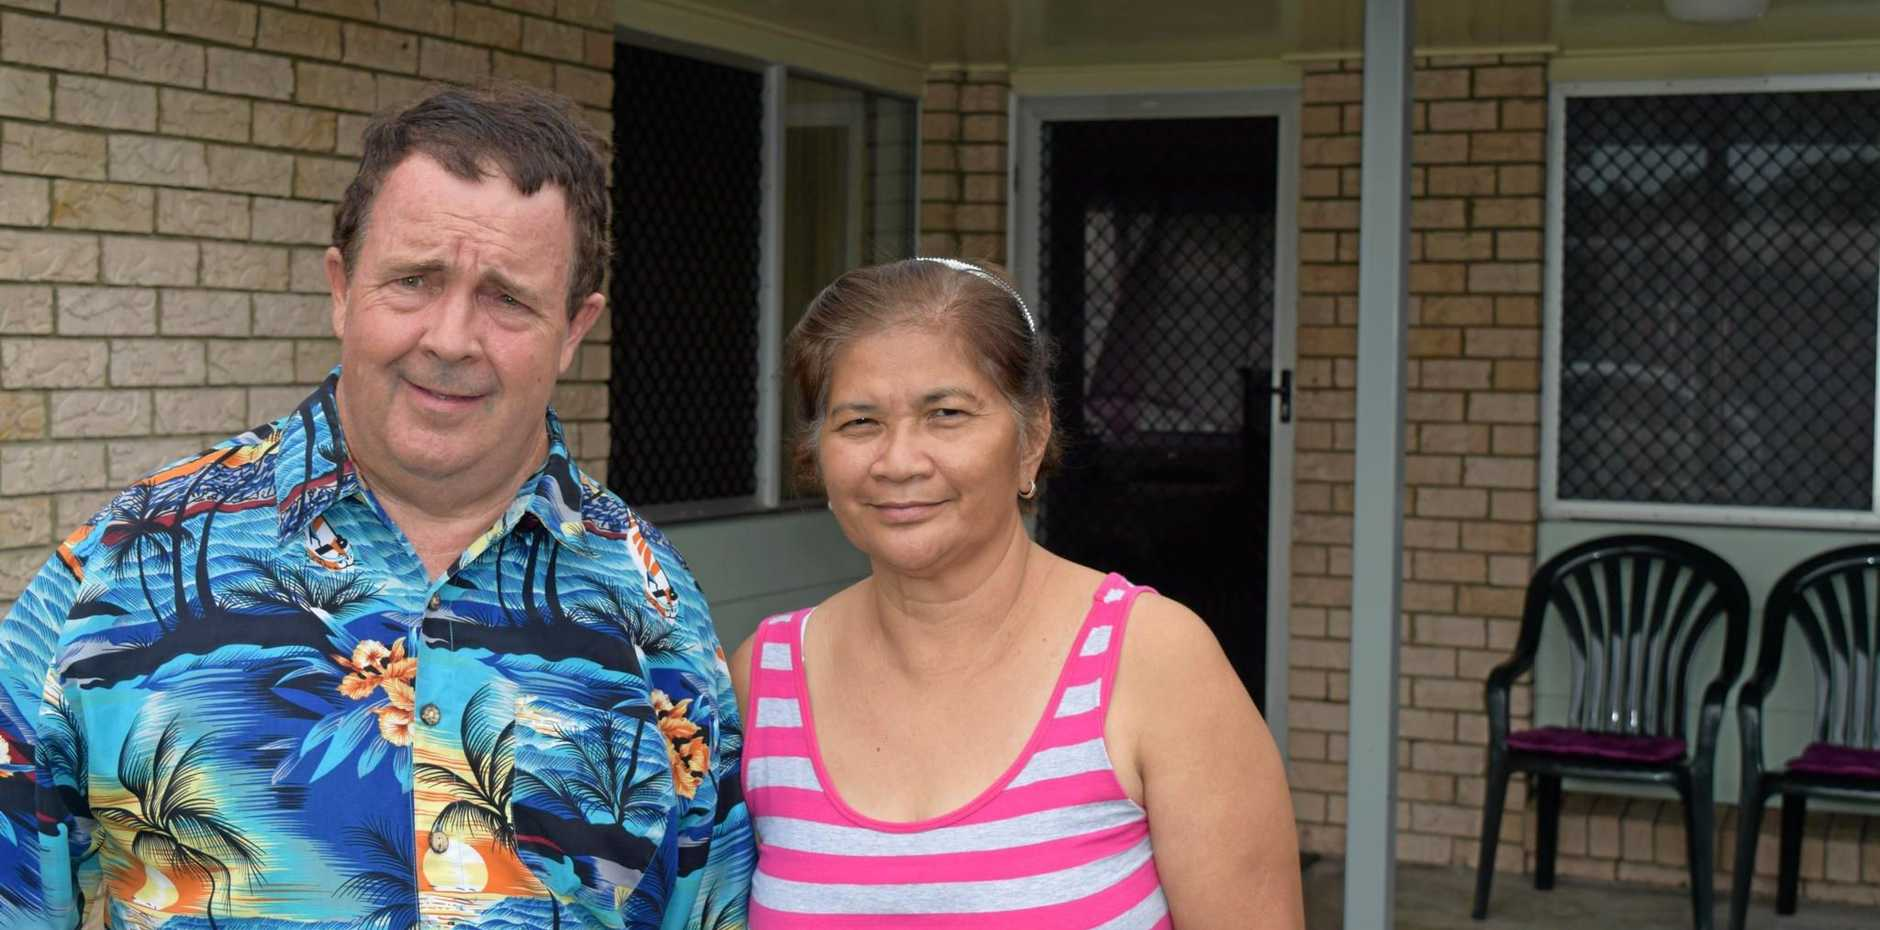 Dennis and Julieta Lyons have been told by the Department of Housing their rent will increase all because the couple fell in love and got married.